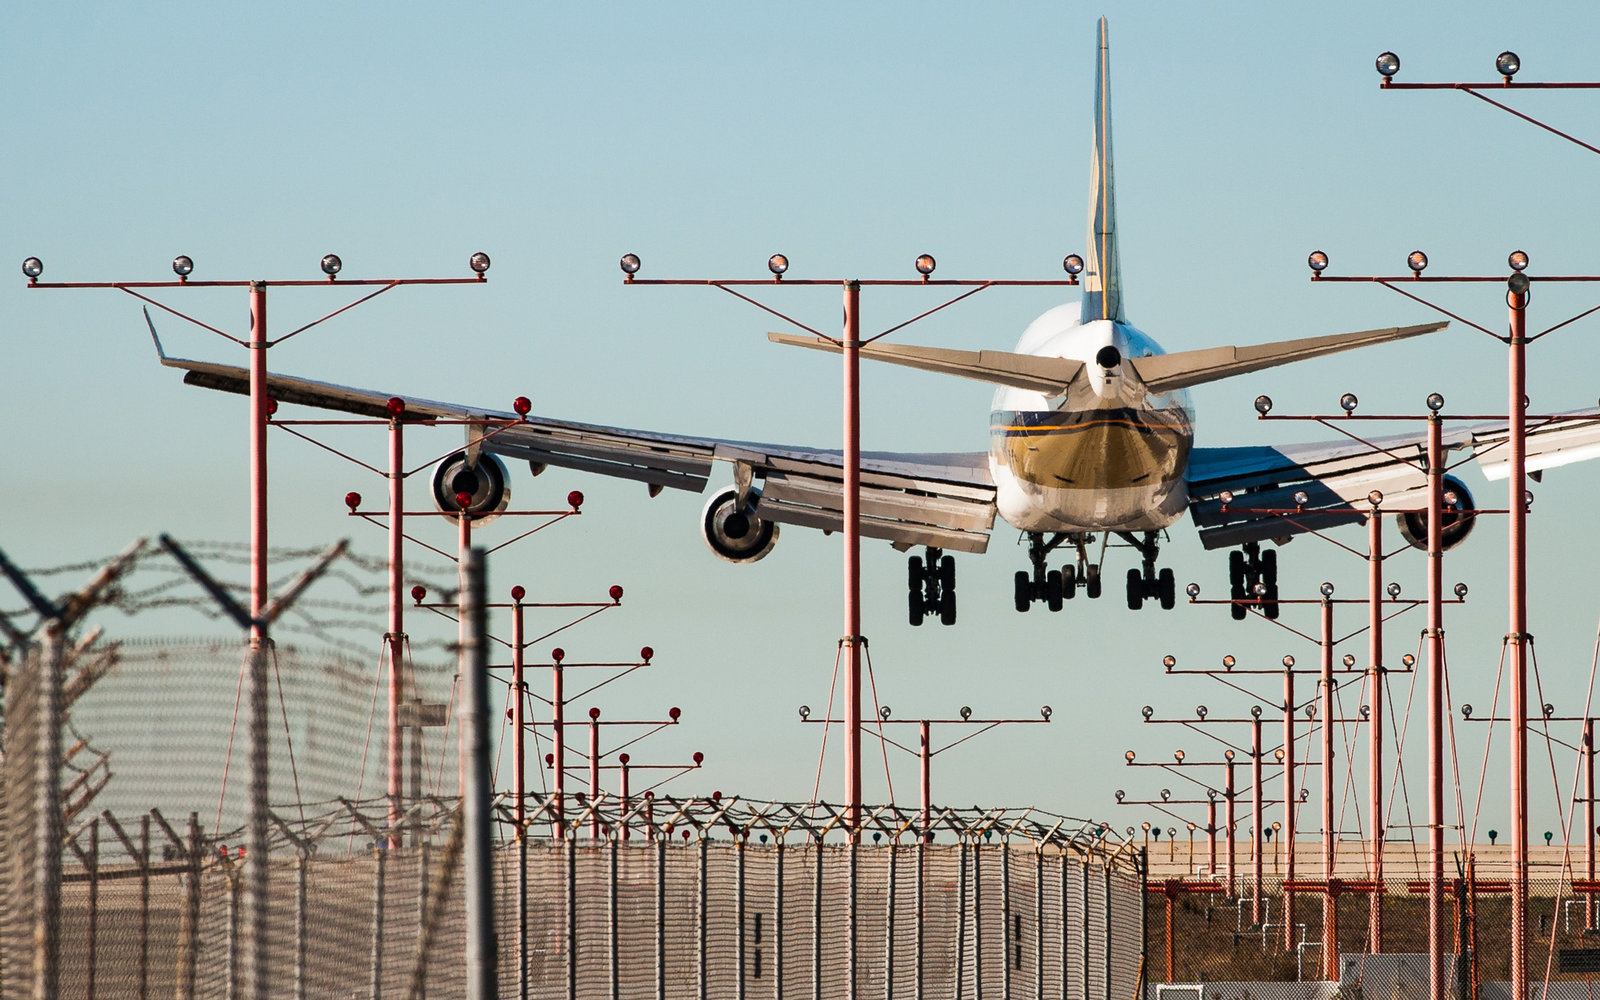 New Flight Patterns Could Mean More Noise Pollution For